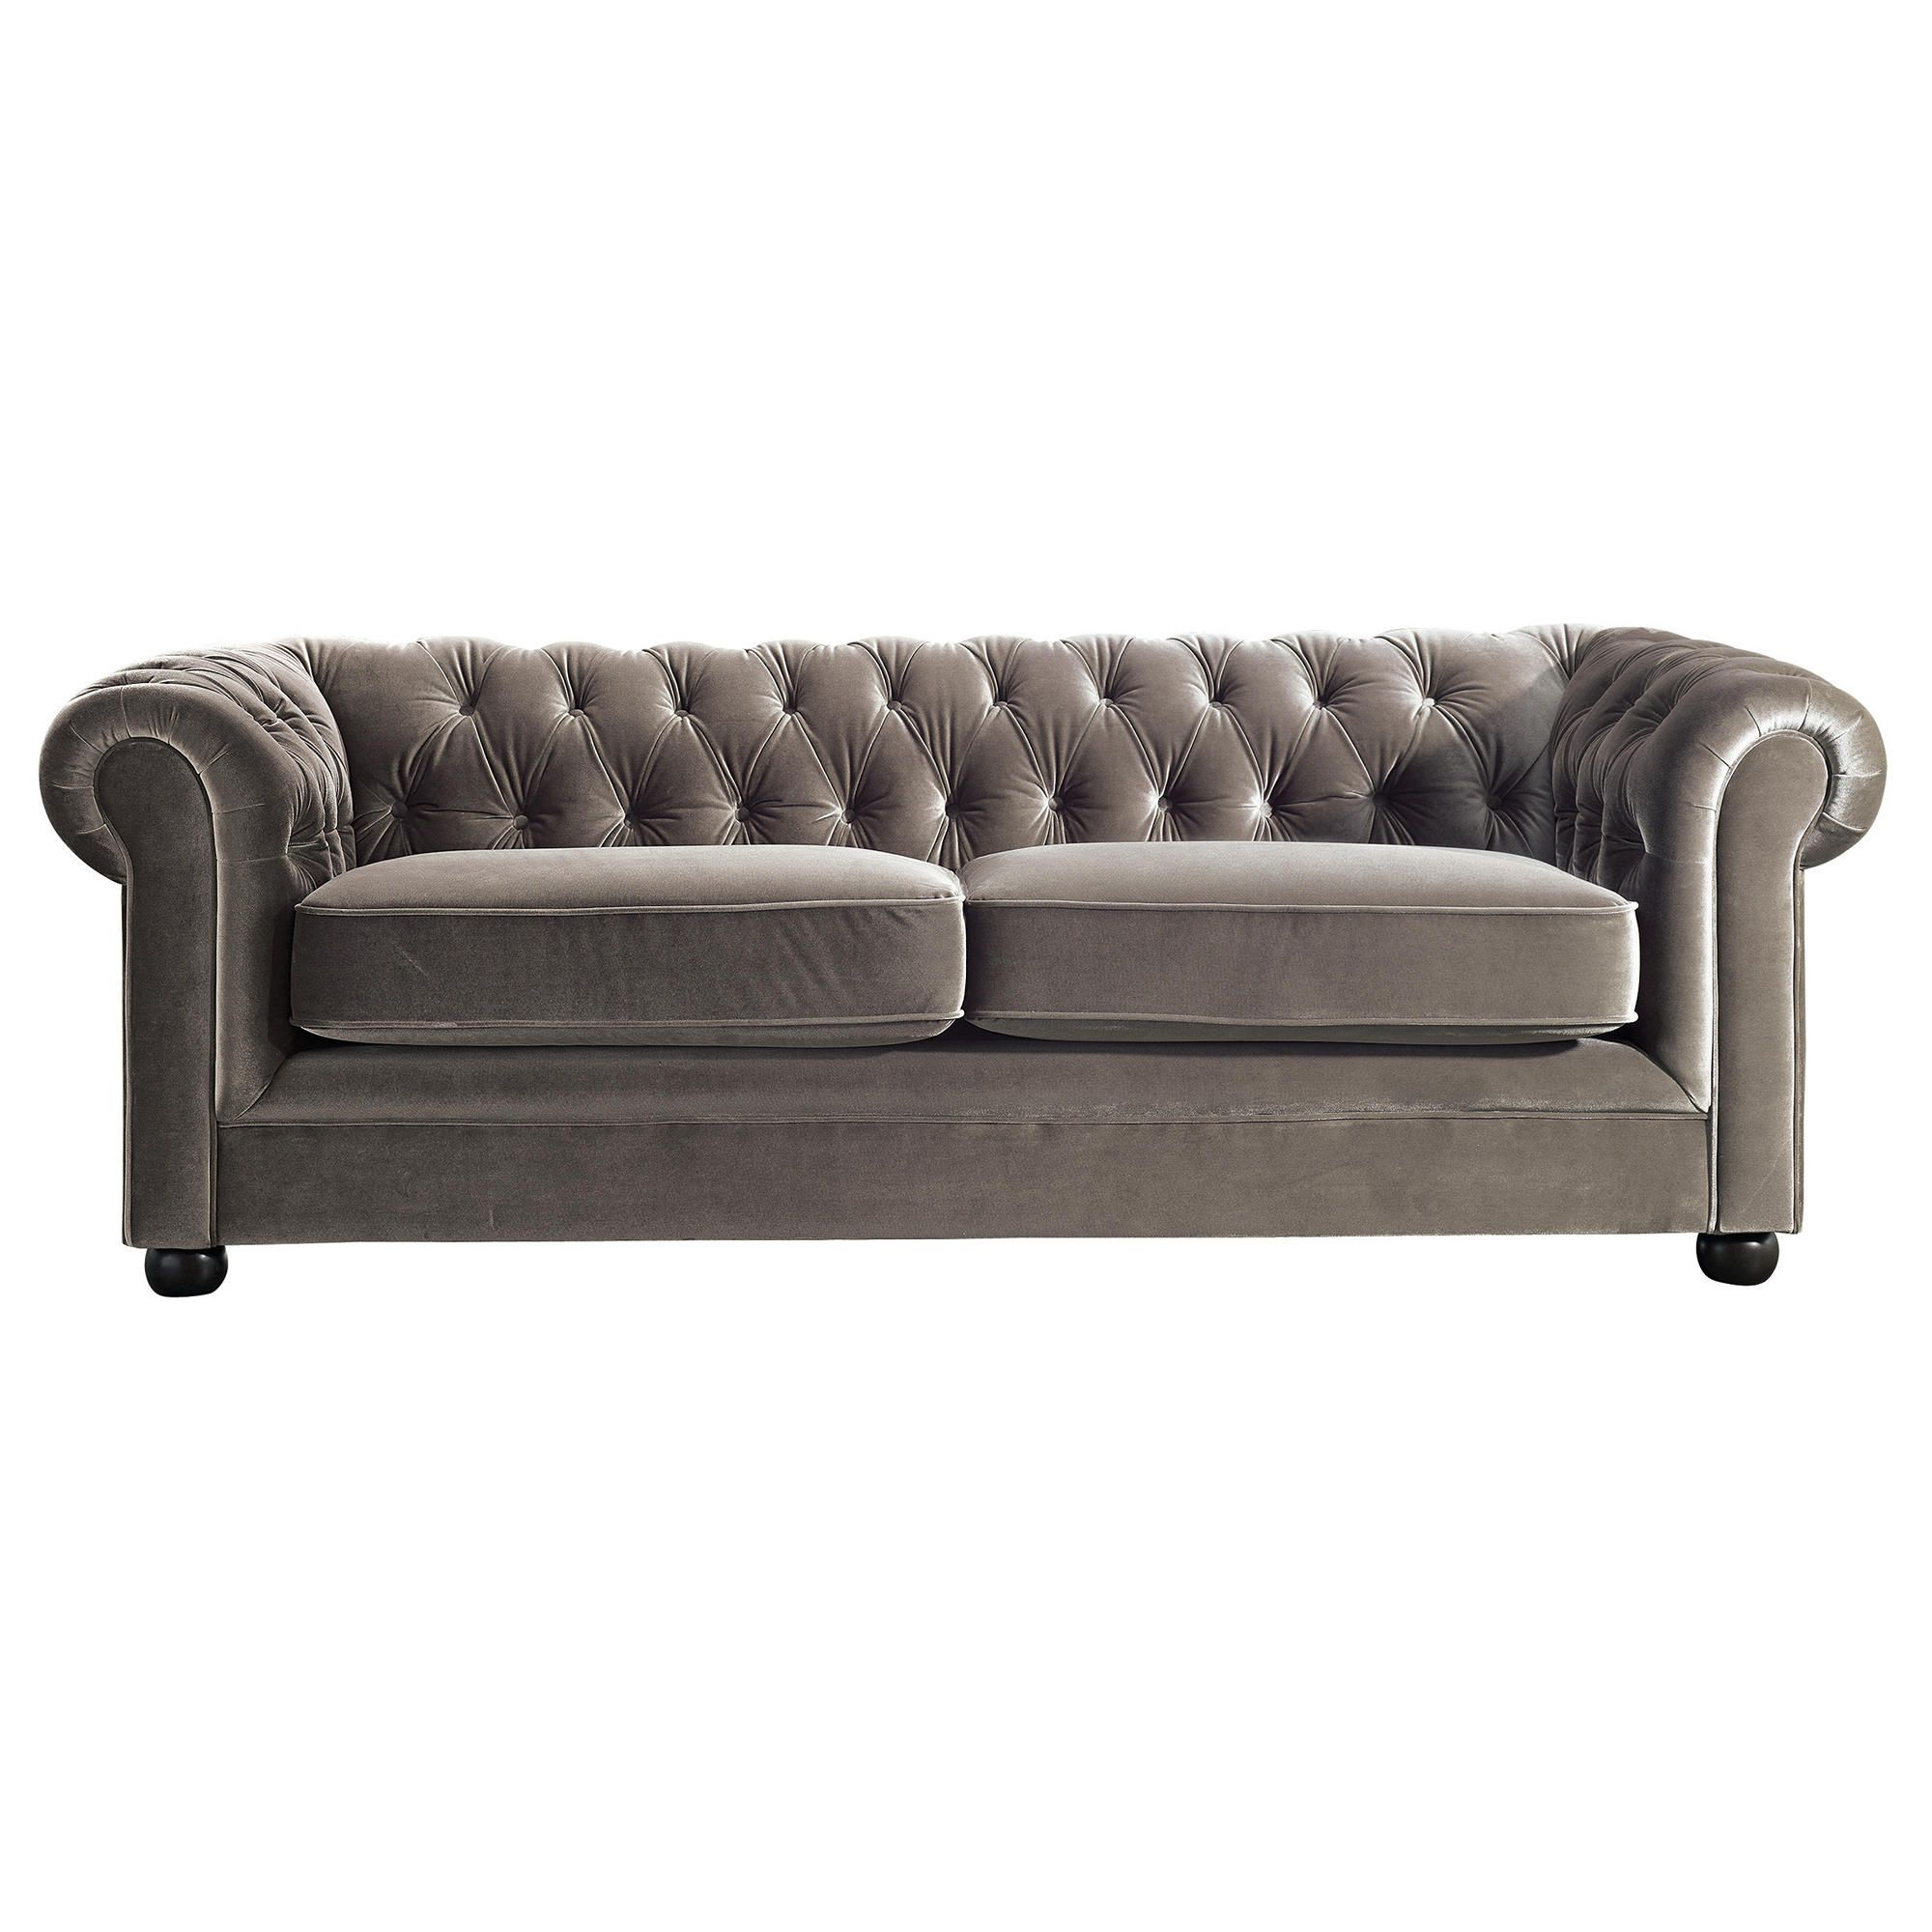 Chesterfield Velvet Medium Sofa, Mink at Tesco Direct